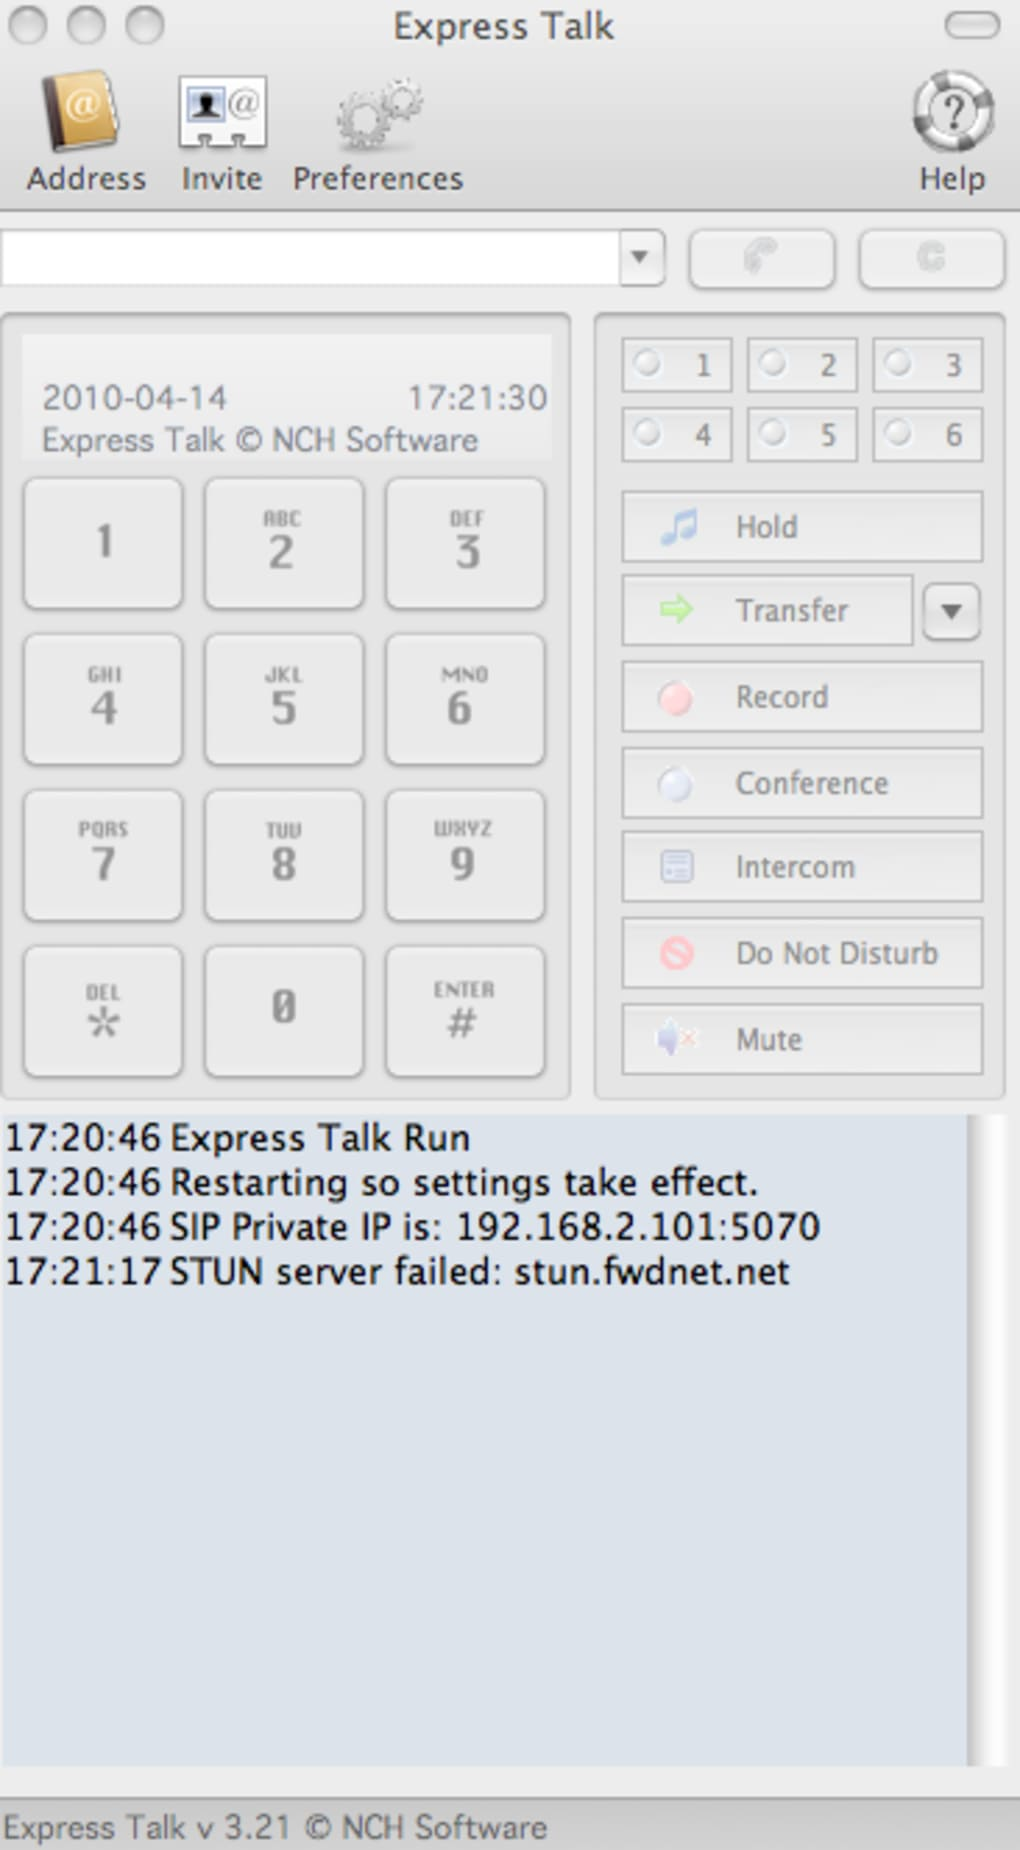 Express Talk Free VoIP Softphone for Mac (Mac) - Download